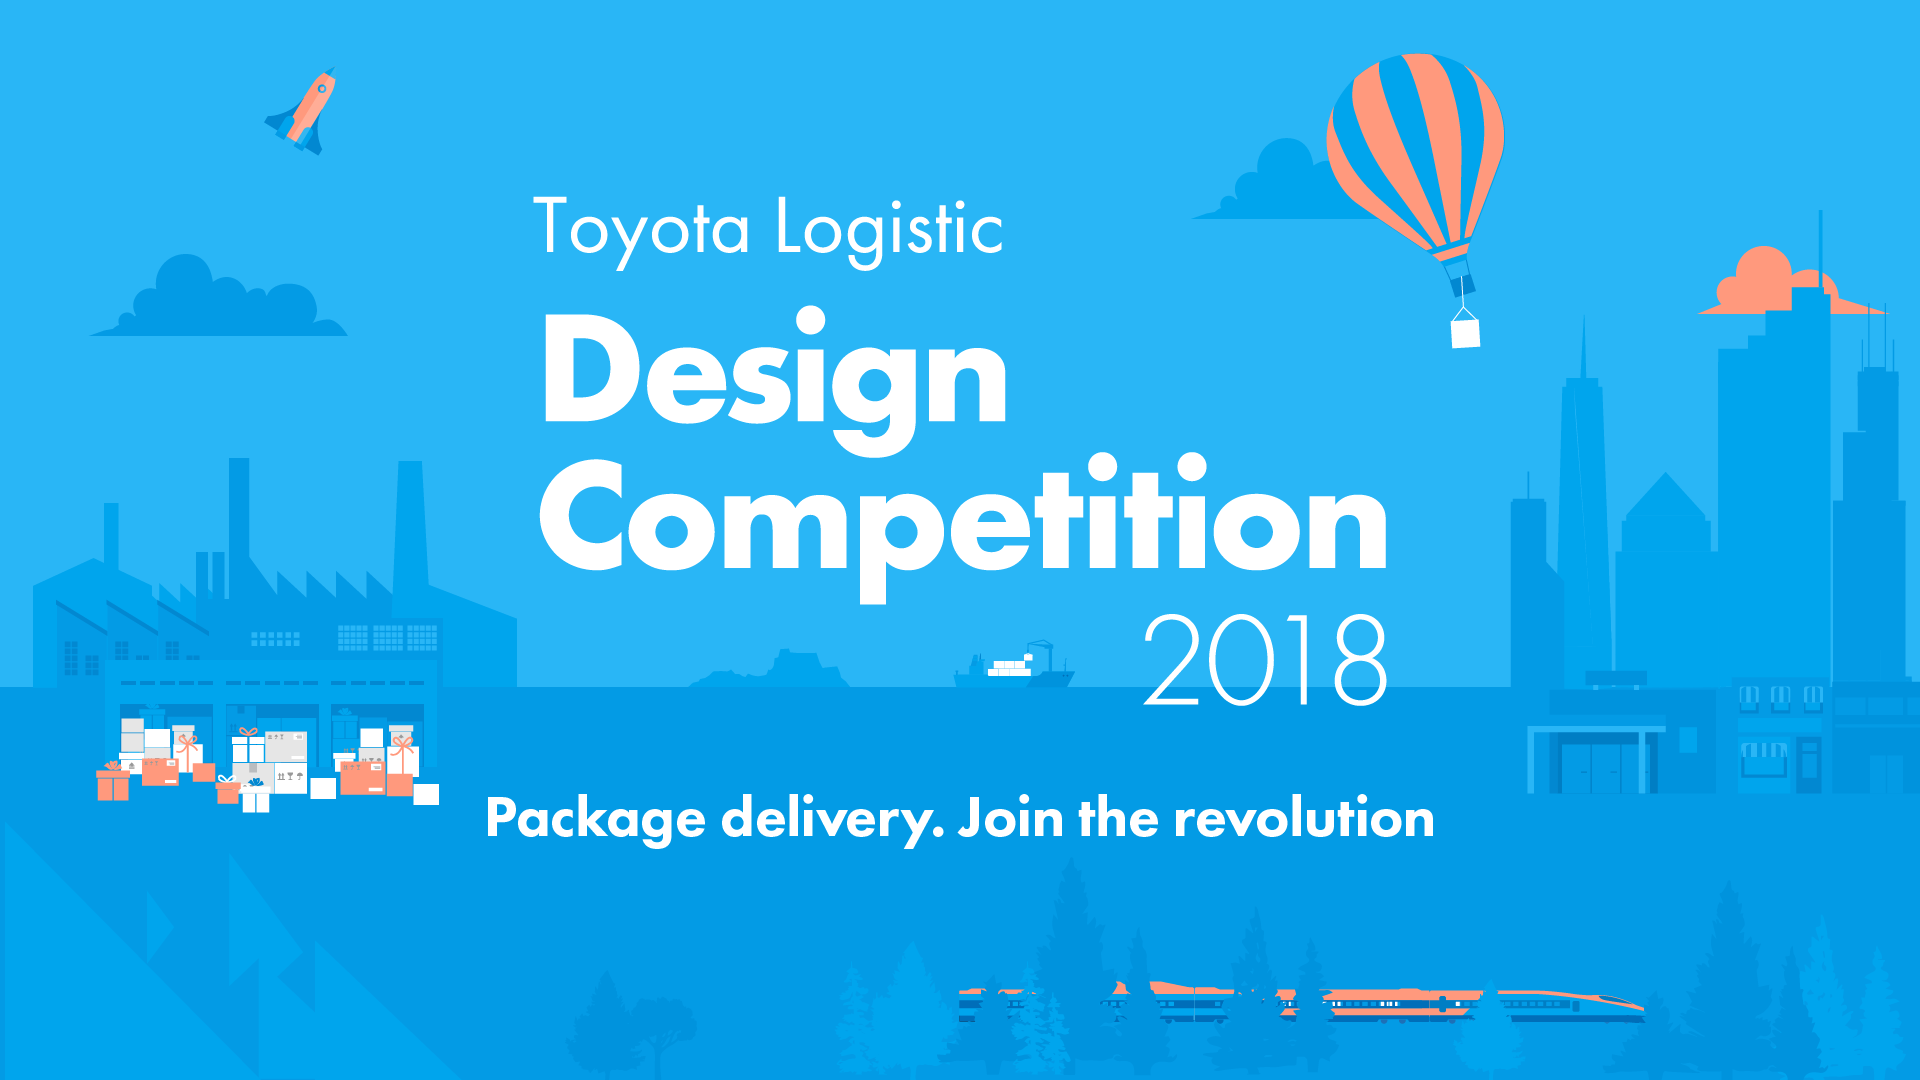 Toyota Logistic Design Competition 2018 title picture